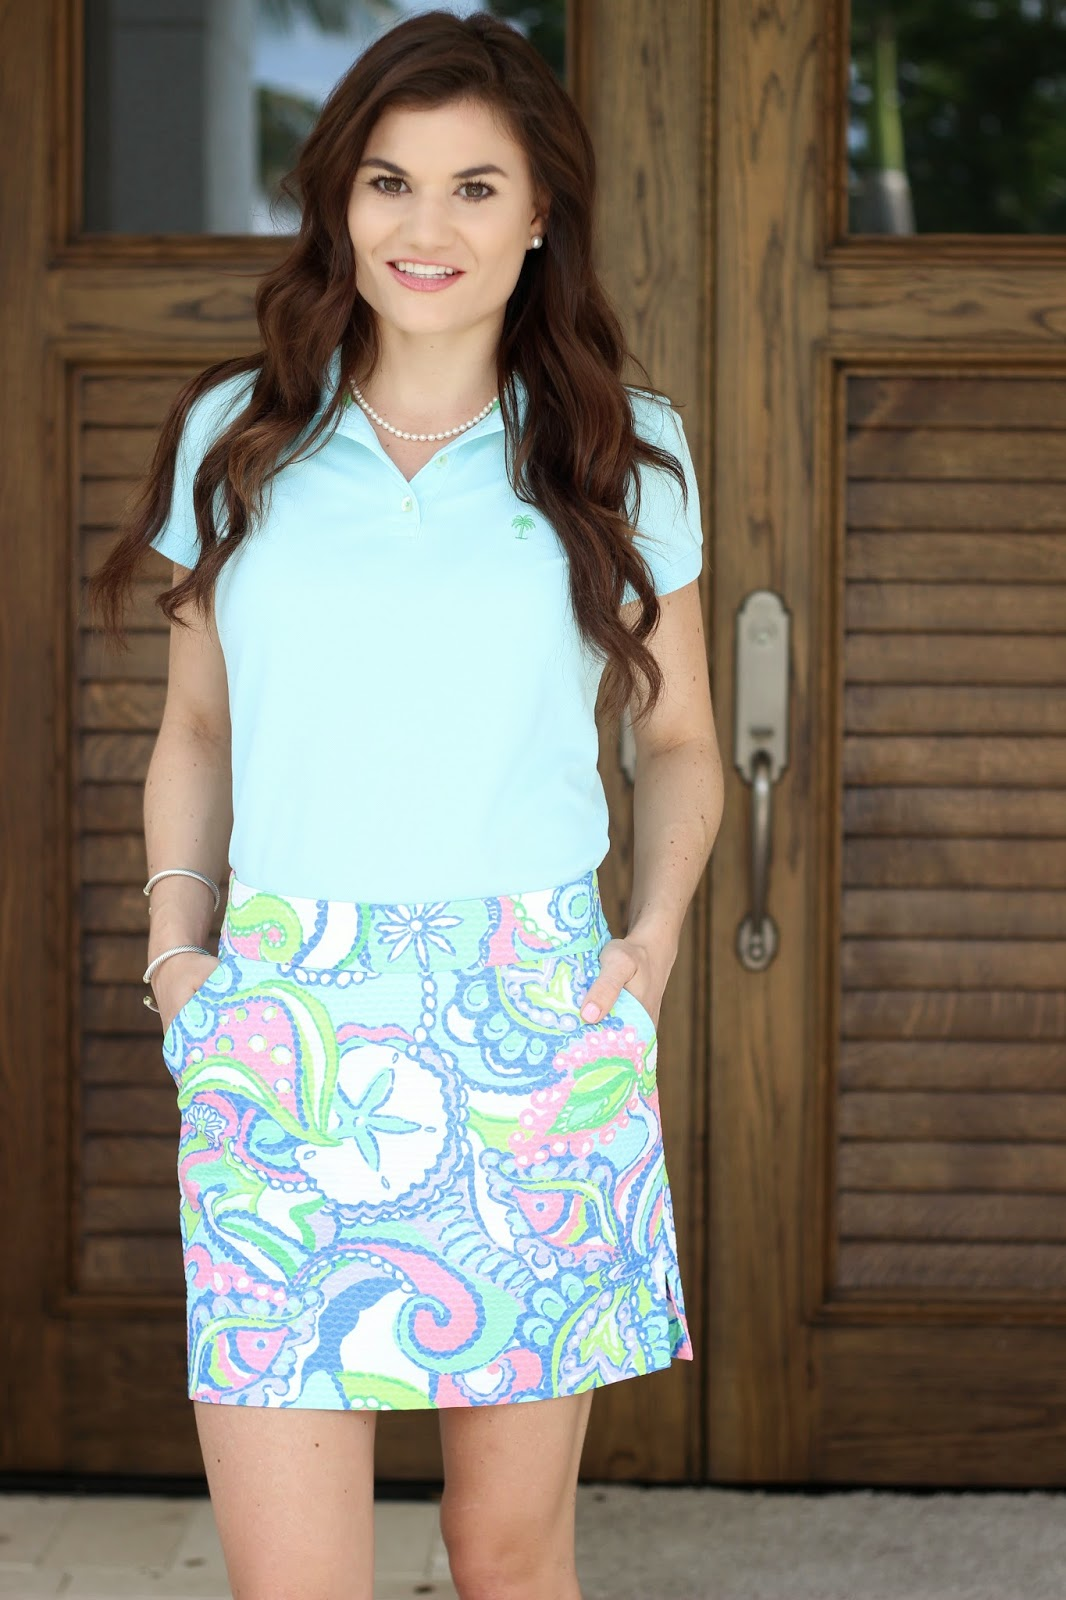 Lilly Pulitzer polo and skort for golfing